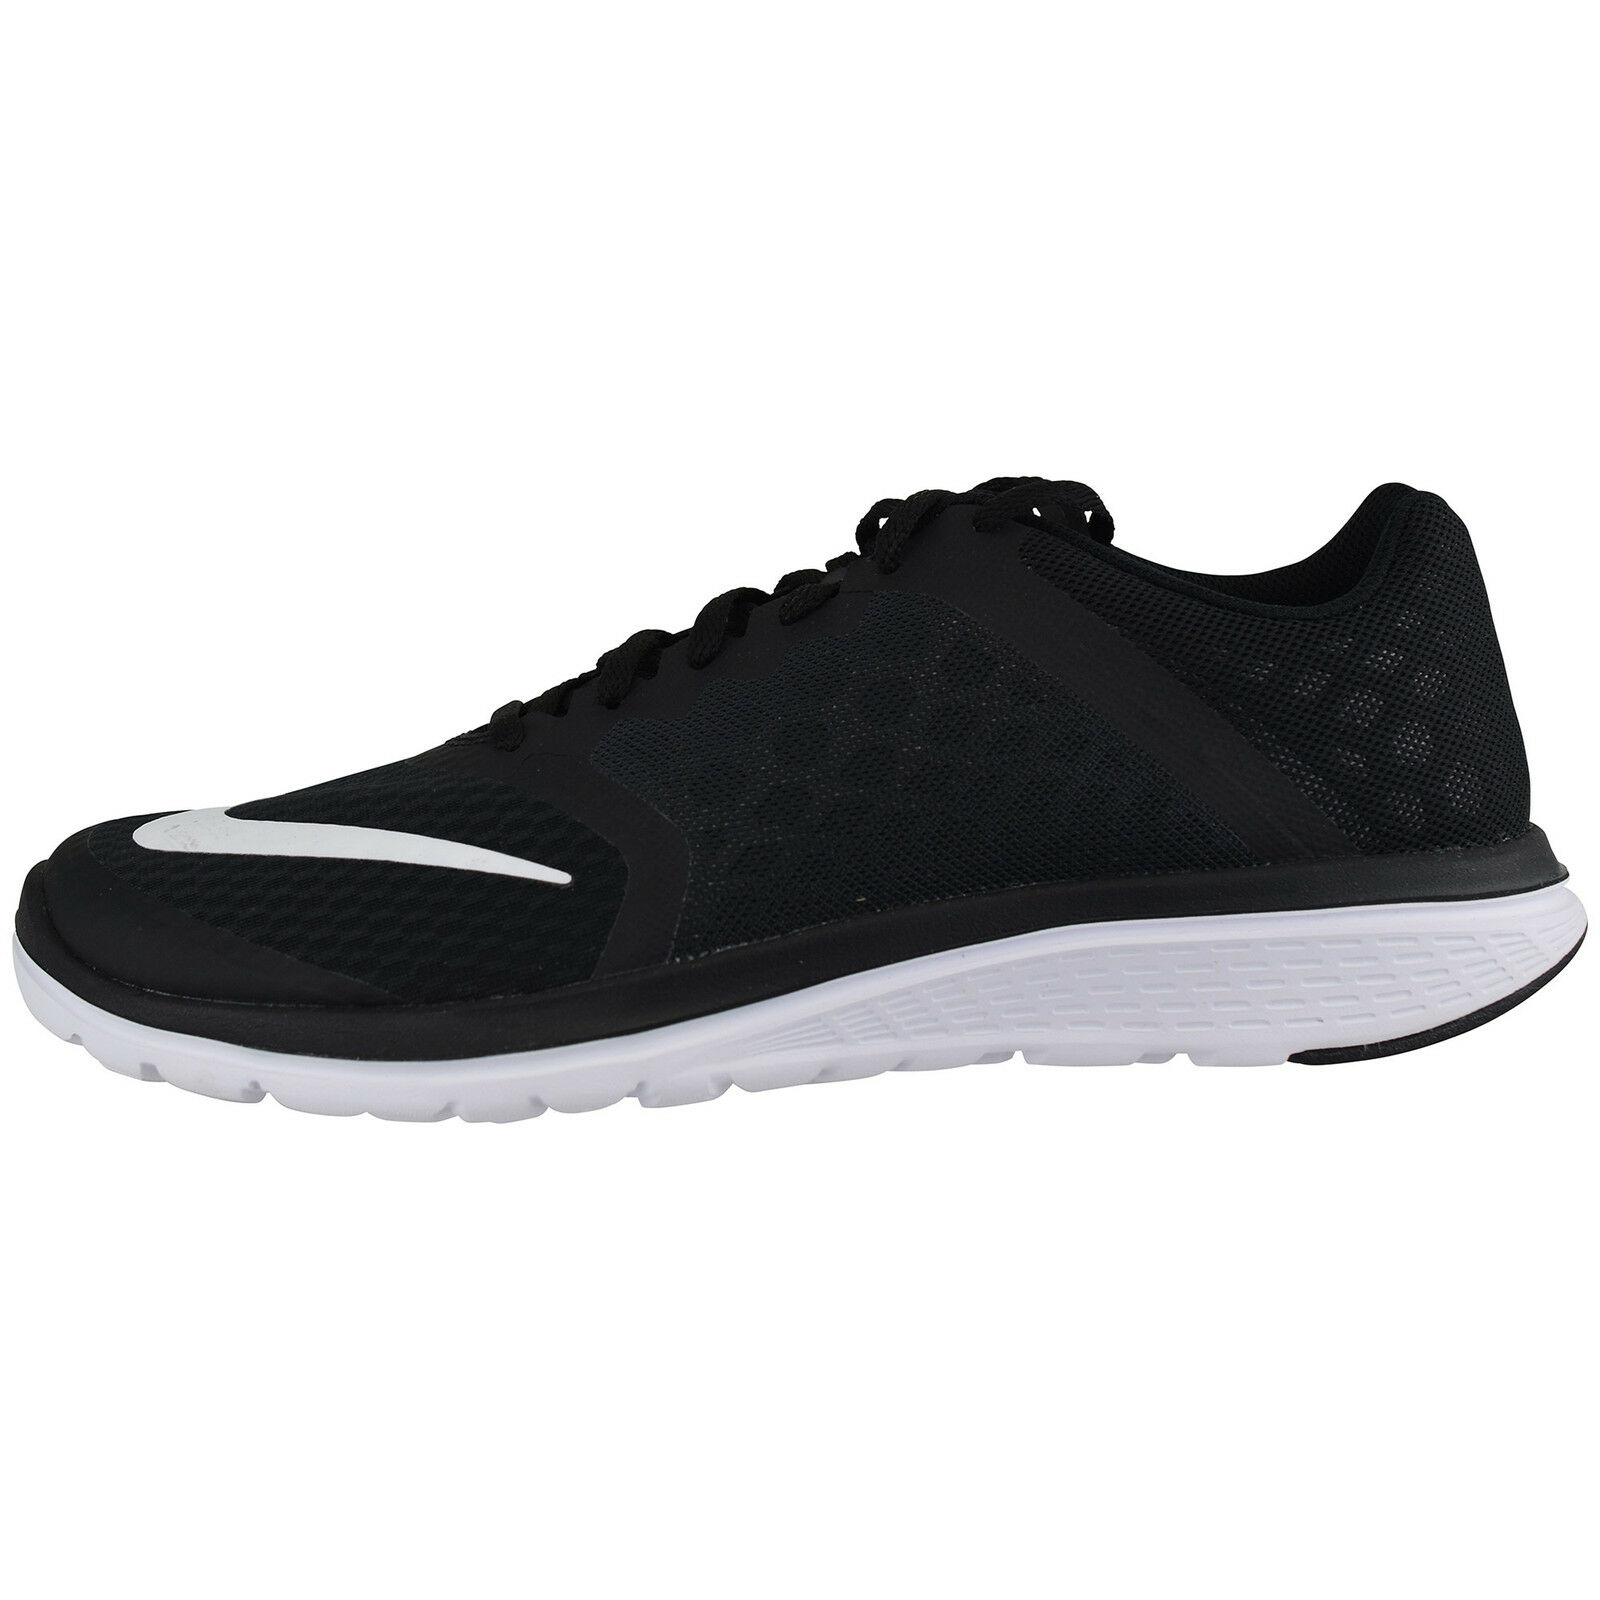 Nike FS Lite Run 3 807144-001 Lifestyle Running shoes Casual Trainers